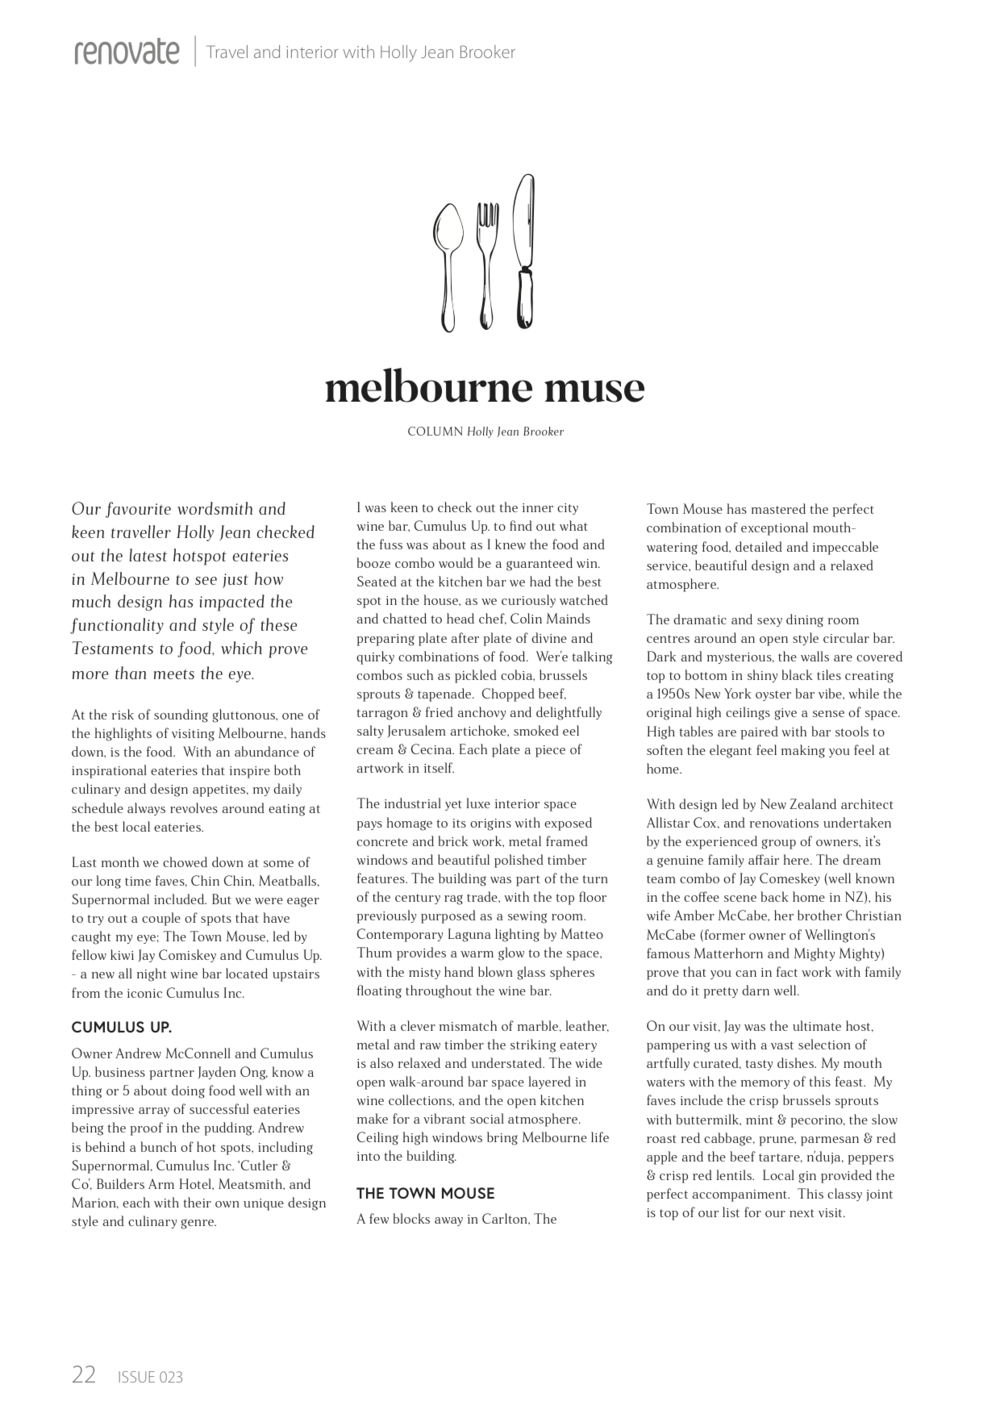 - Renovate Magazine 2017Holly's Design & Travel Column covers epic eateries in Melbourne city.